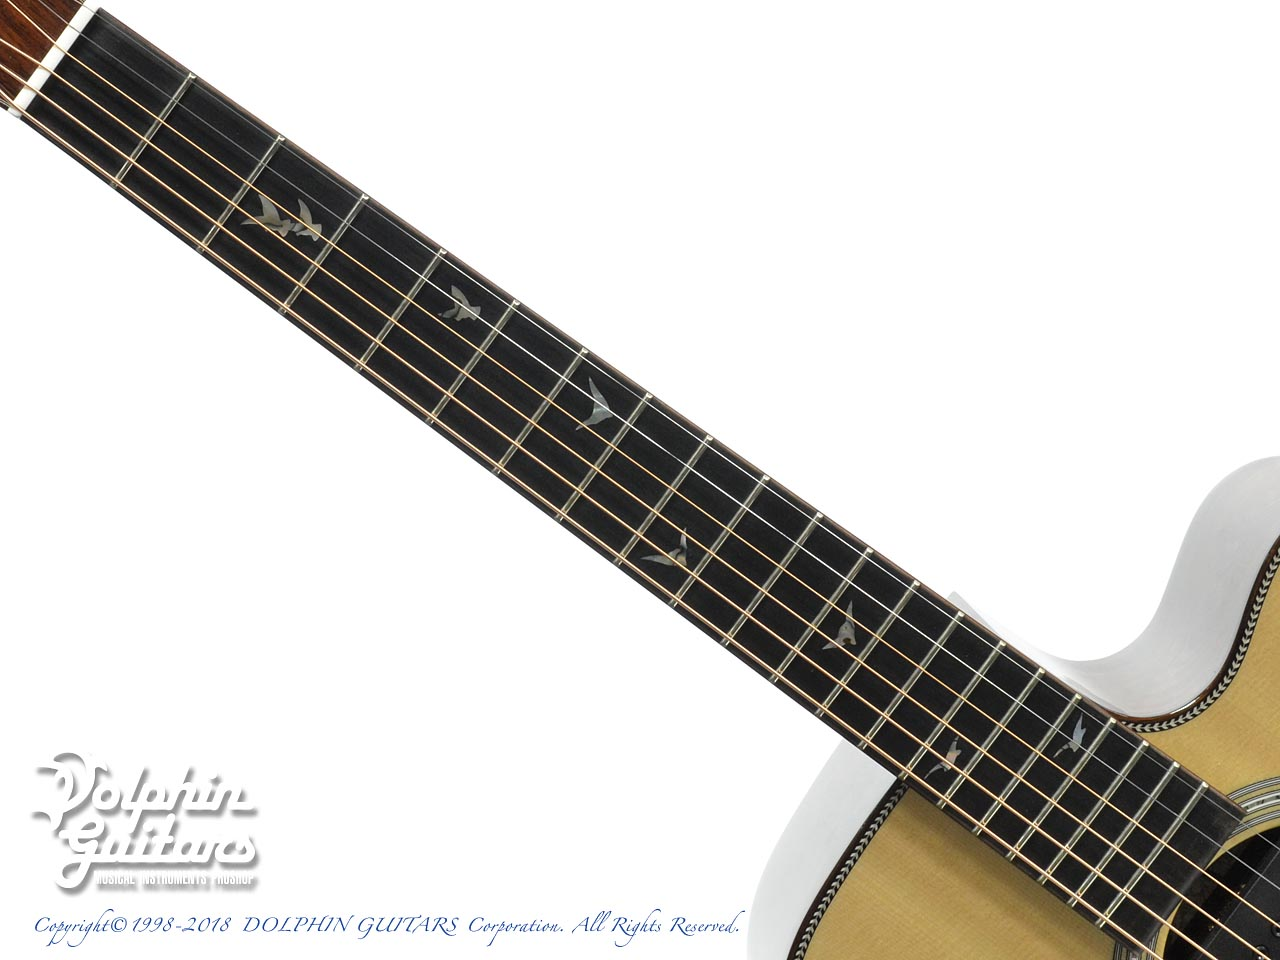 Greven Guitars Japan: Oshio-DC HR (Honduras Rosewood) w/RAPTOR SYSTEM by TRIAL  (4)